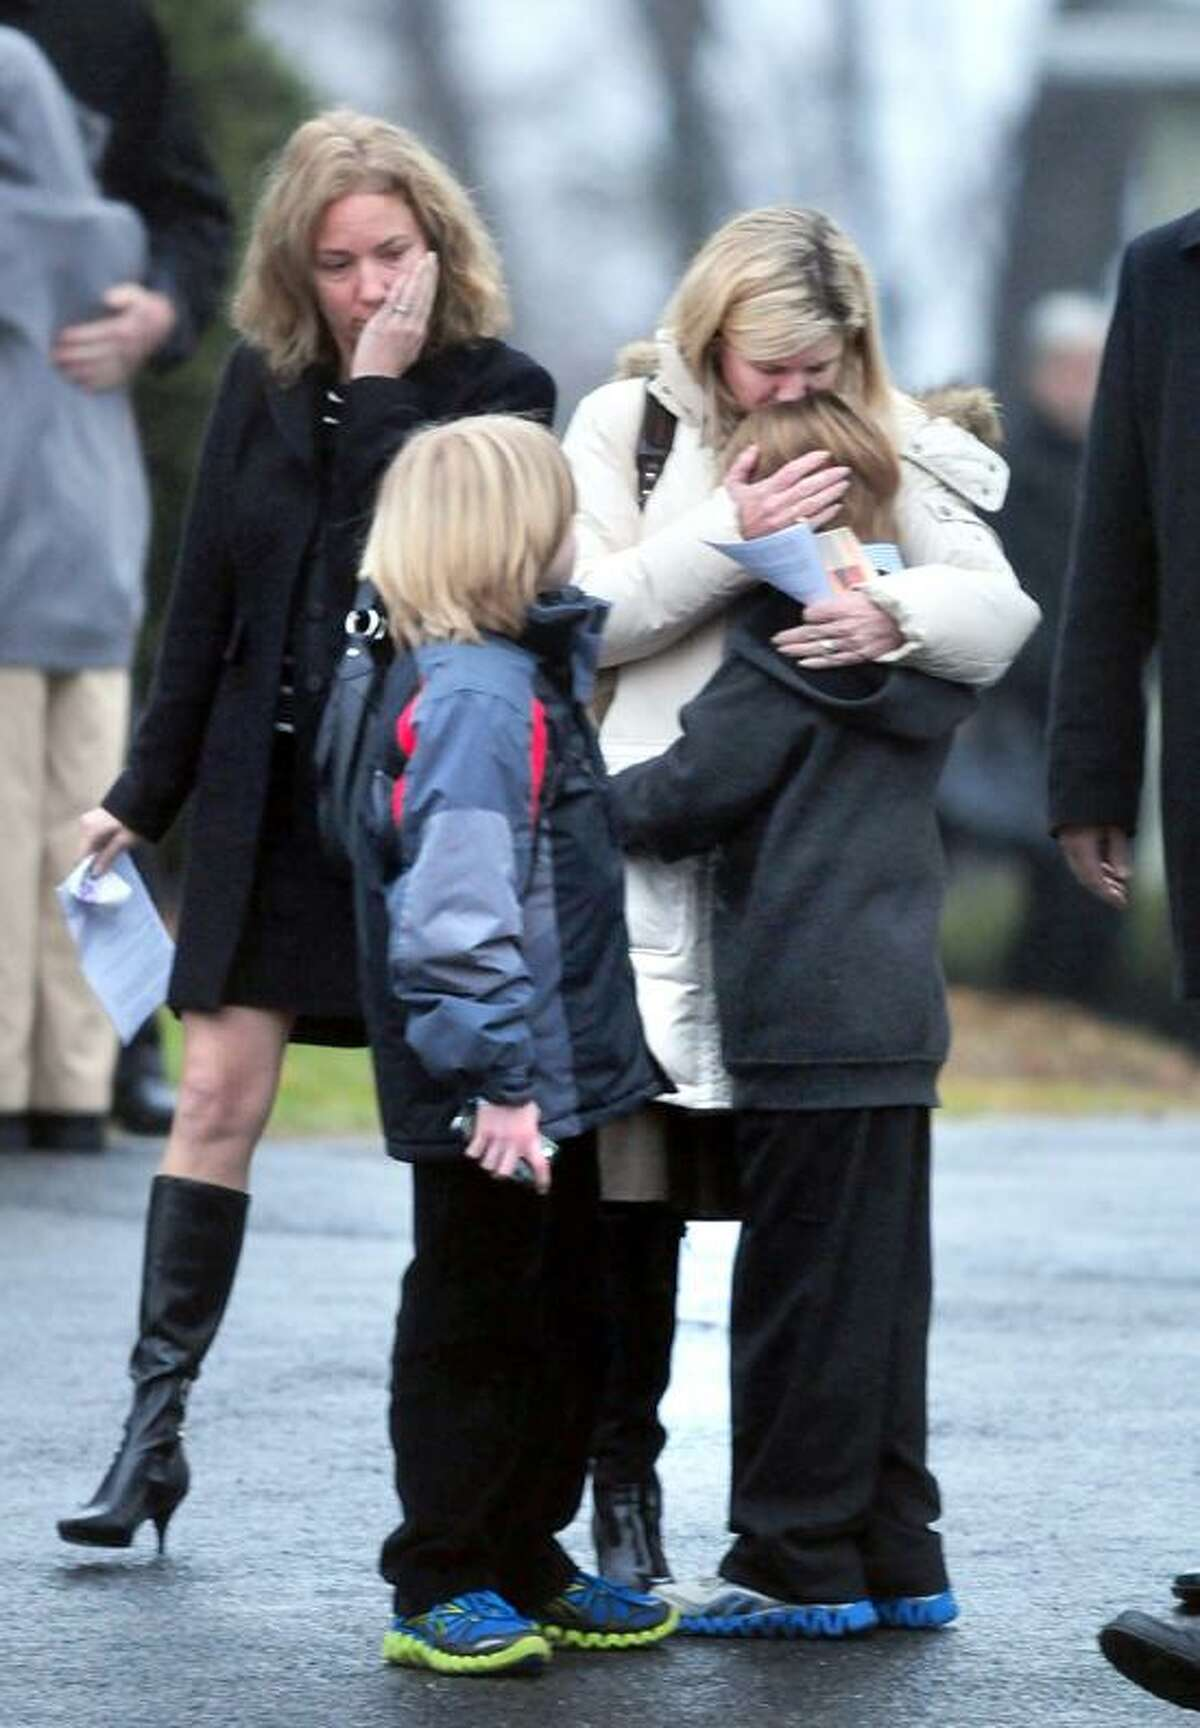 Mourners embrace as they leave the Honan Funeral Home in Newtown on 12/17/2012 after funeral services for six-year-old Jack Pinto, a victim of the Sandy Hook Elementary School shootings.Photo by Arnold Gold/New Haven Register